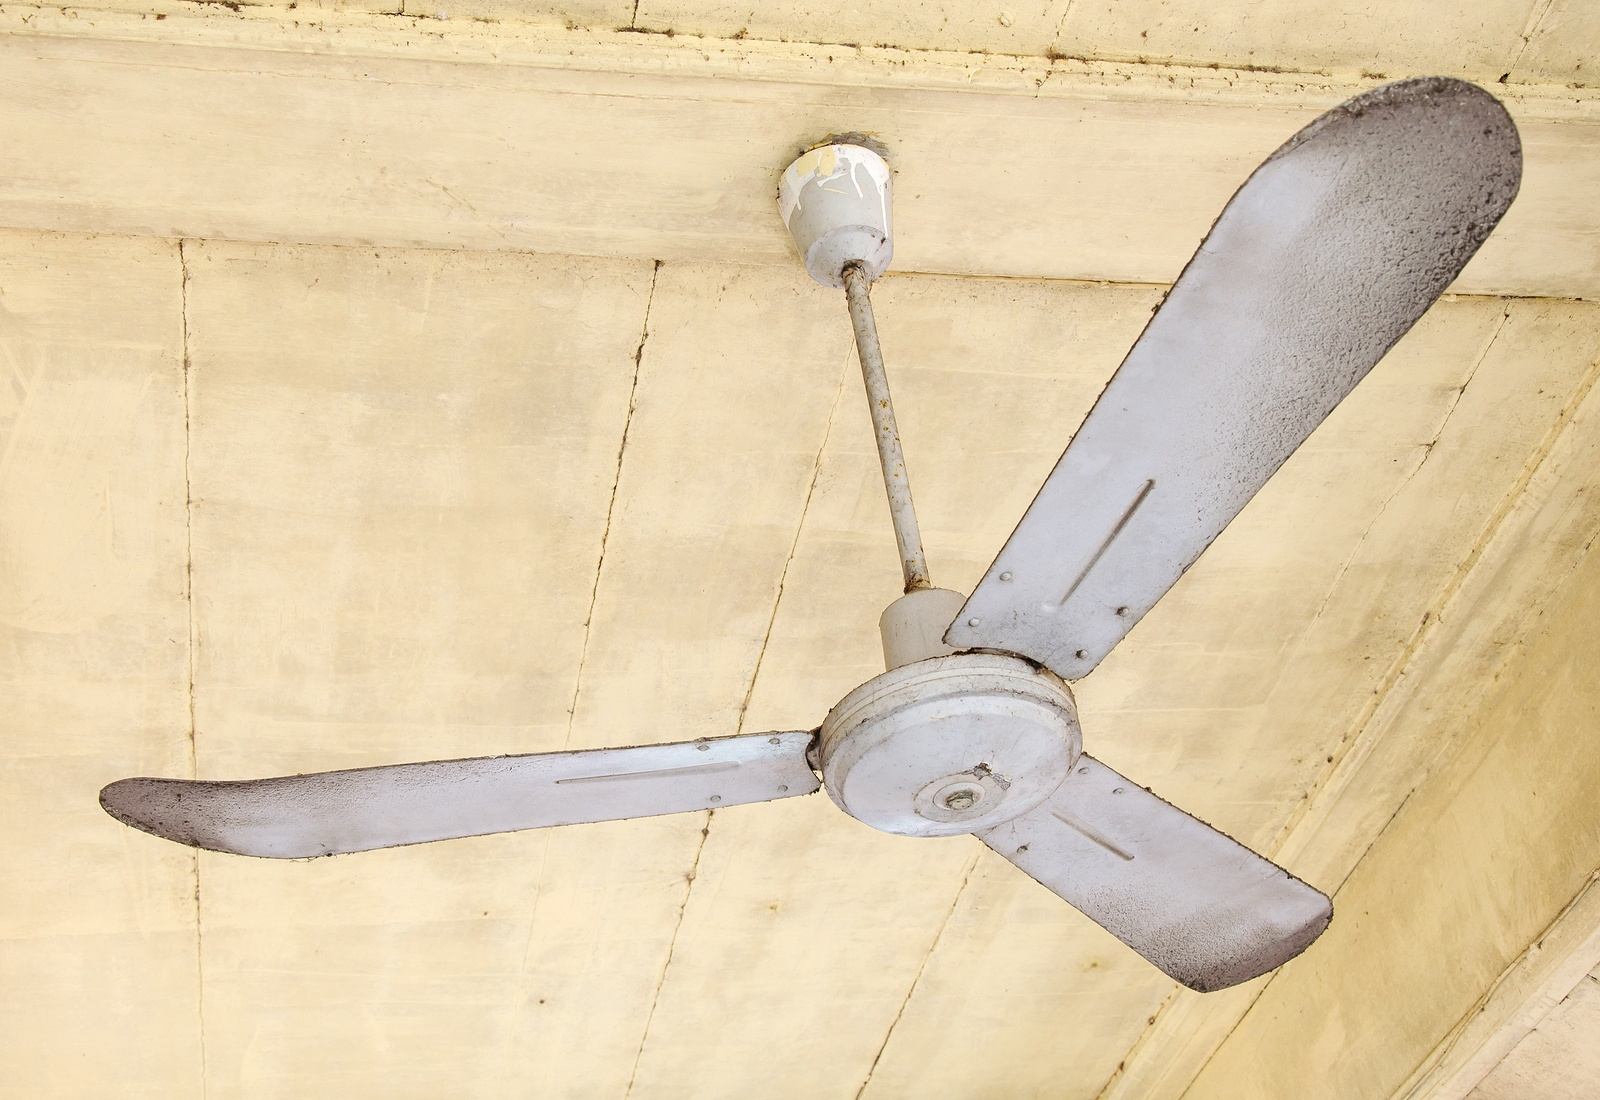 bigstock-Dirty-Ceiling-Fan-32910026.jpg